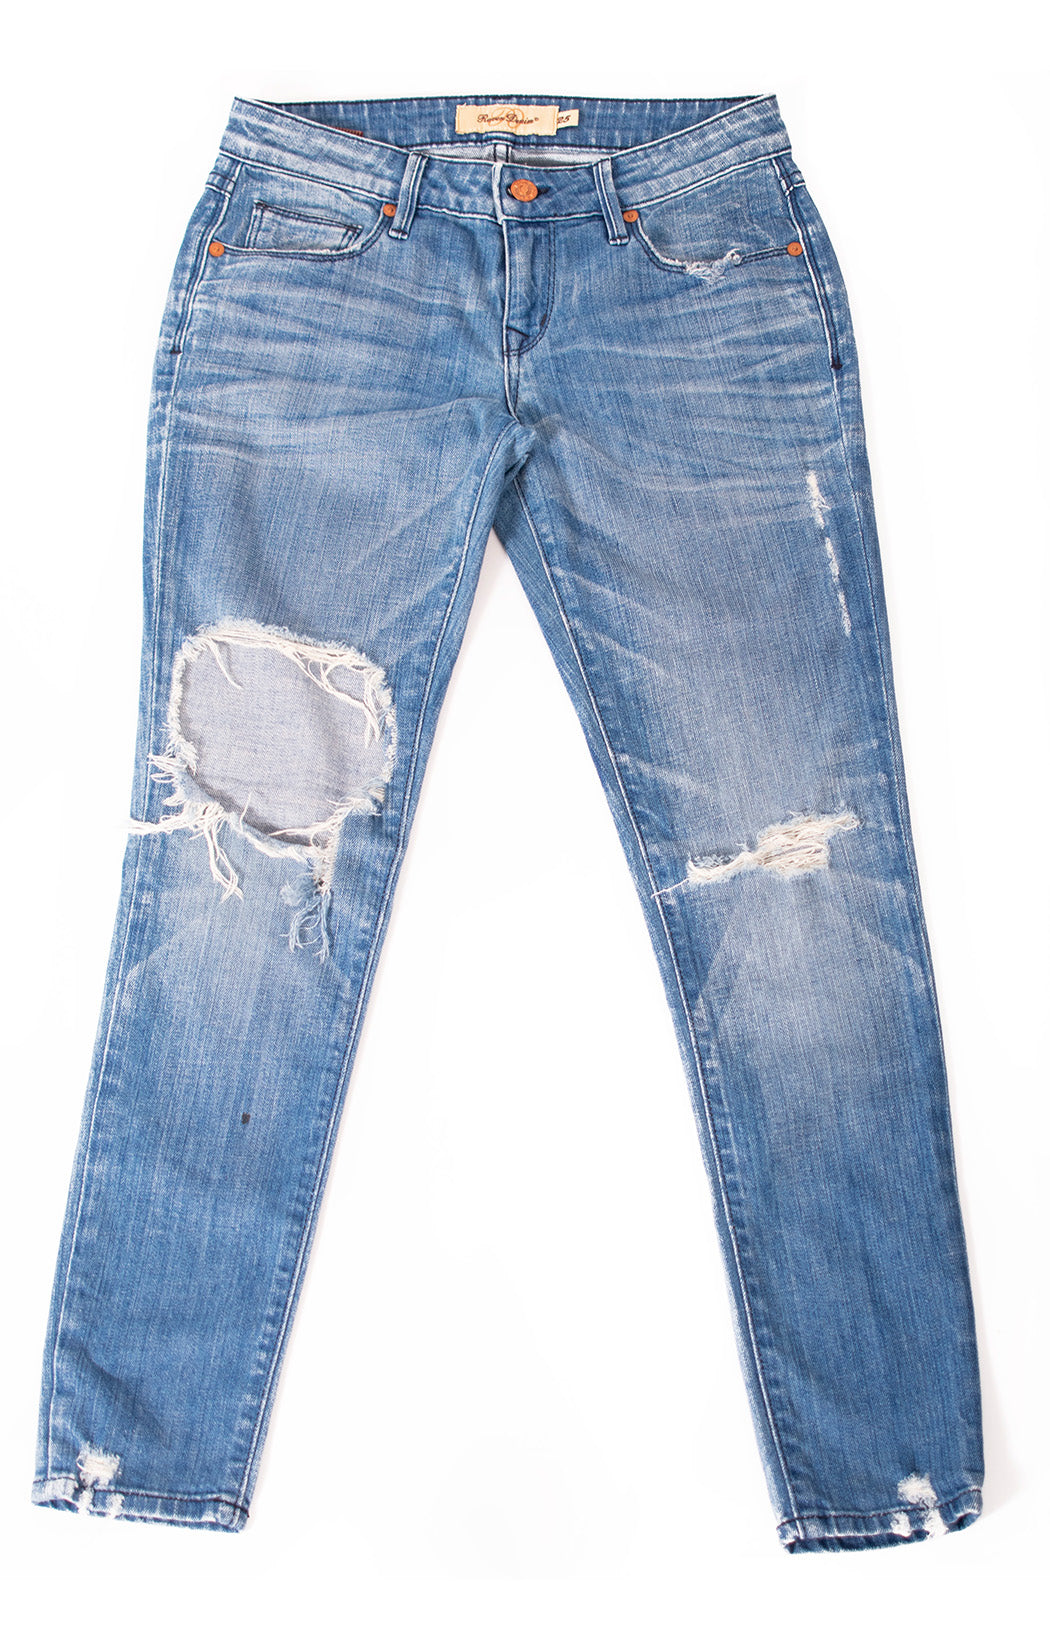 "Front view of RAVEN DENIM Jeans Size: 25""W"